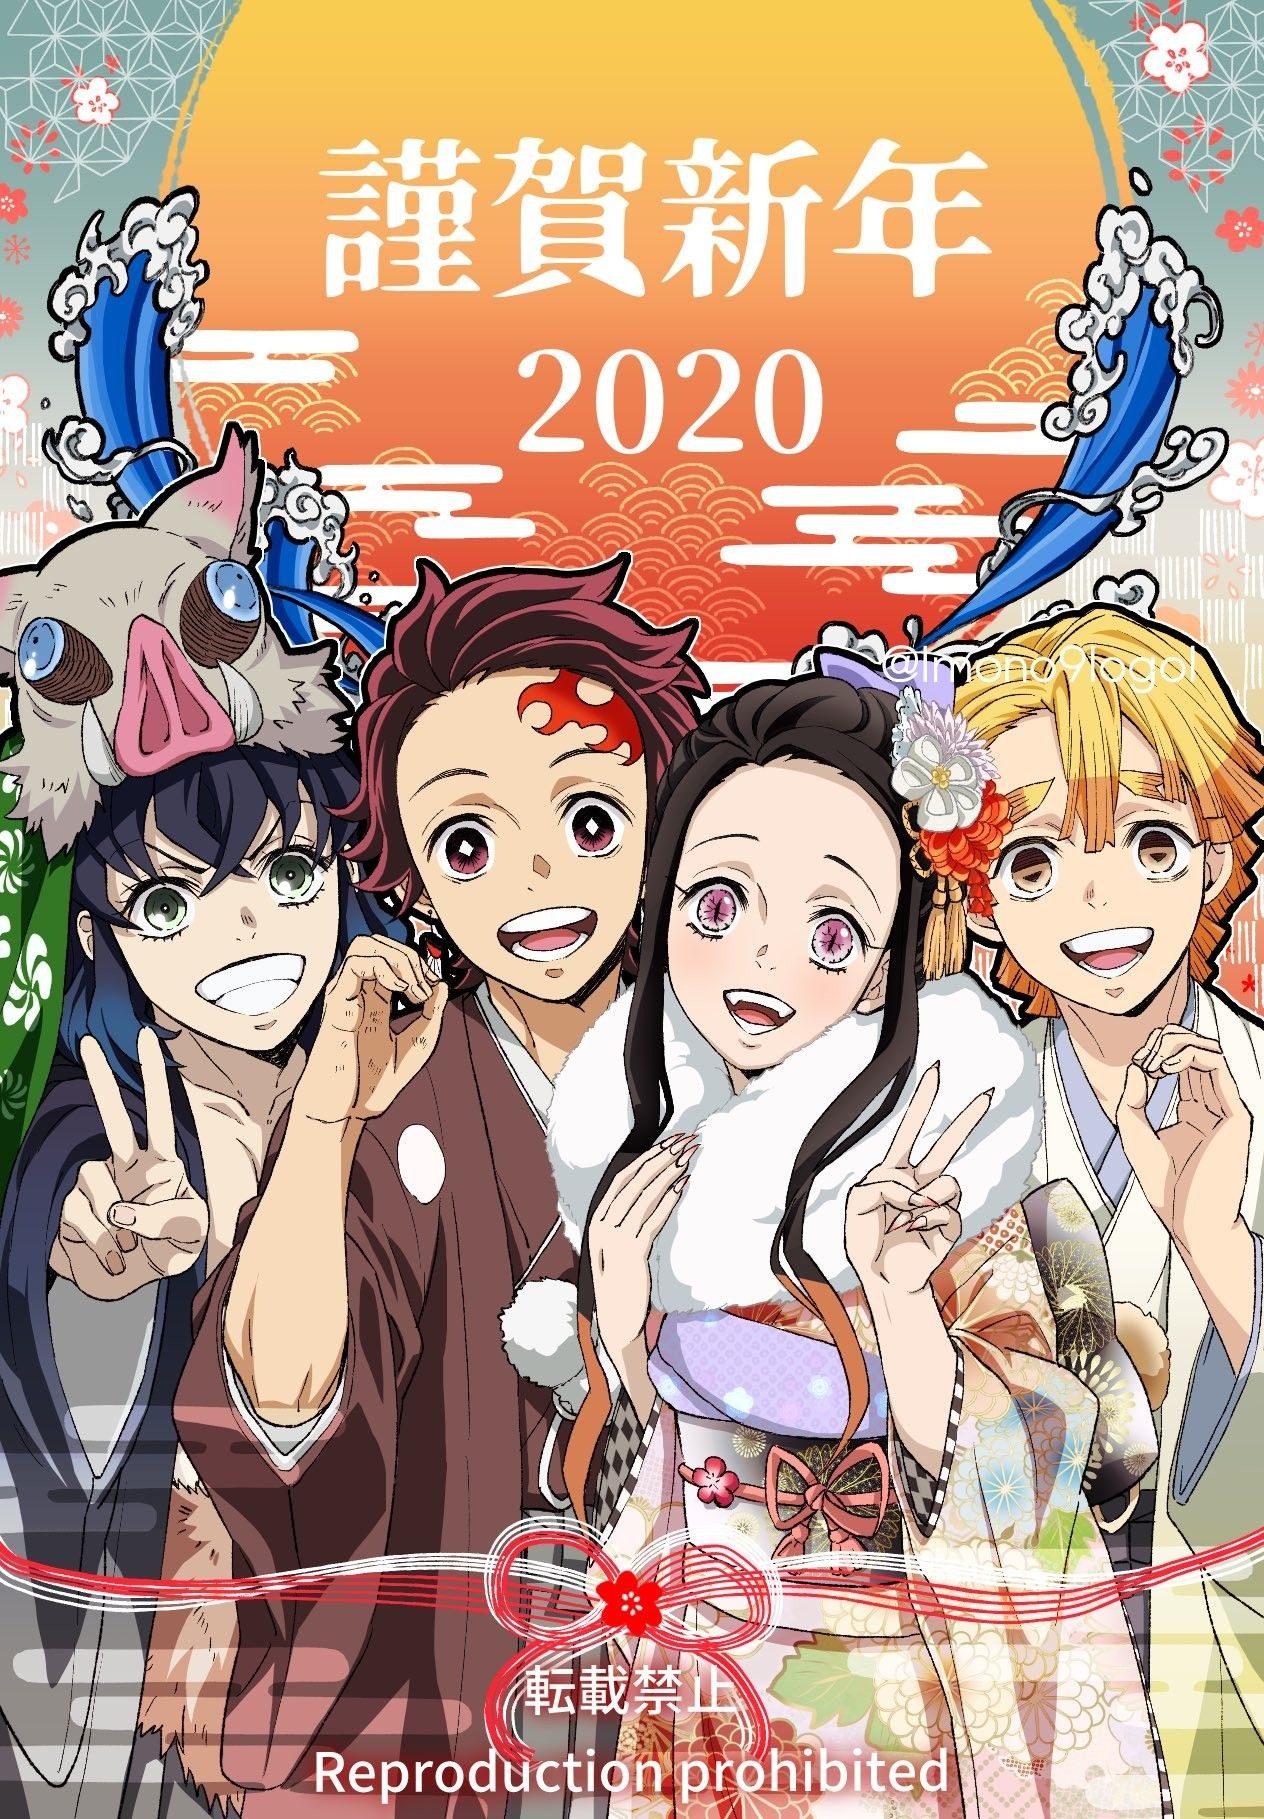 Pin by Aggie on Anime in 2020 (With images) Anime demon